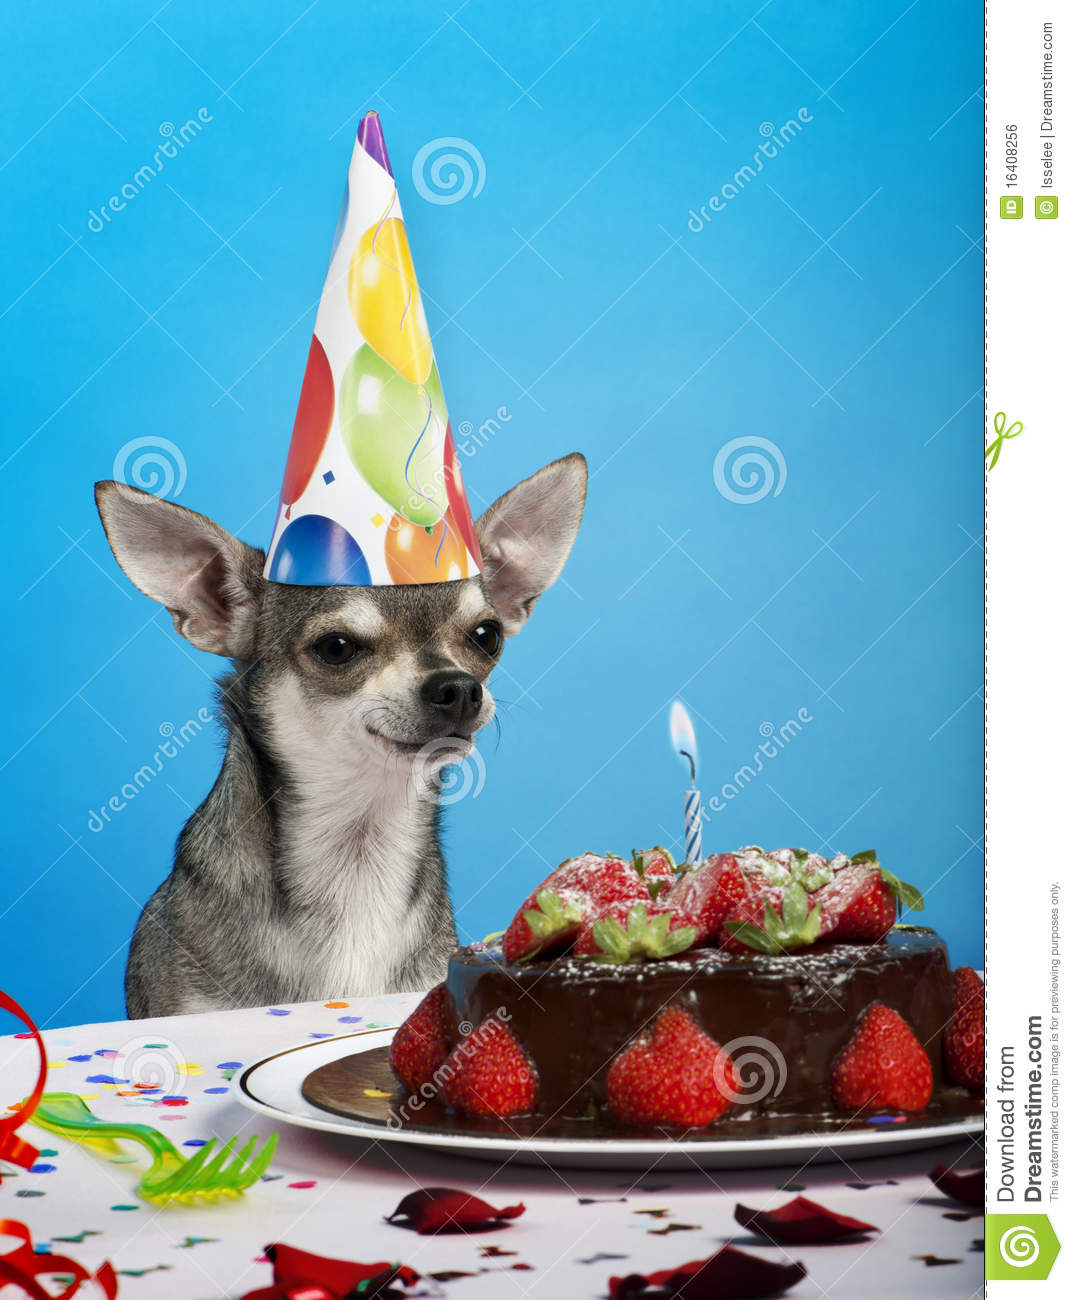 Chihuahua At Table Wearing Birthday Hat Royalty Free Stock